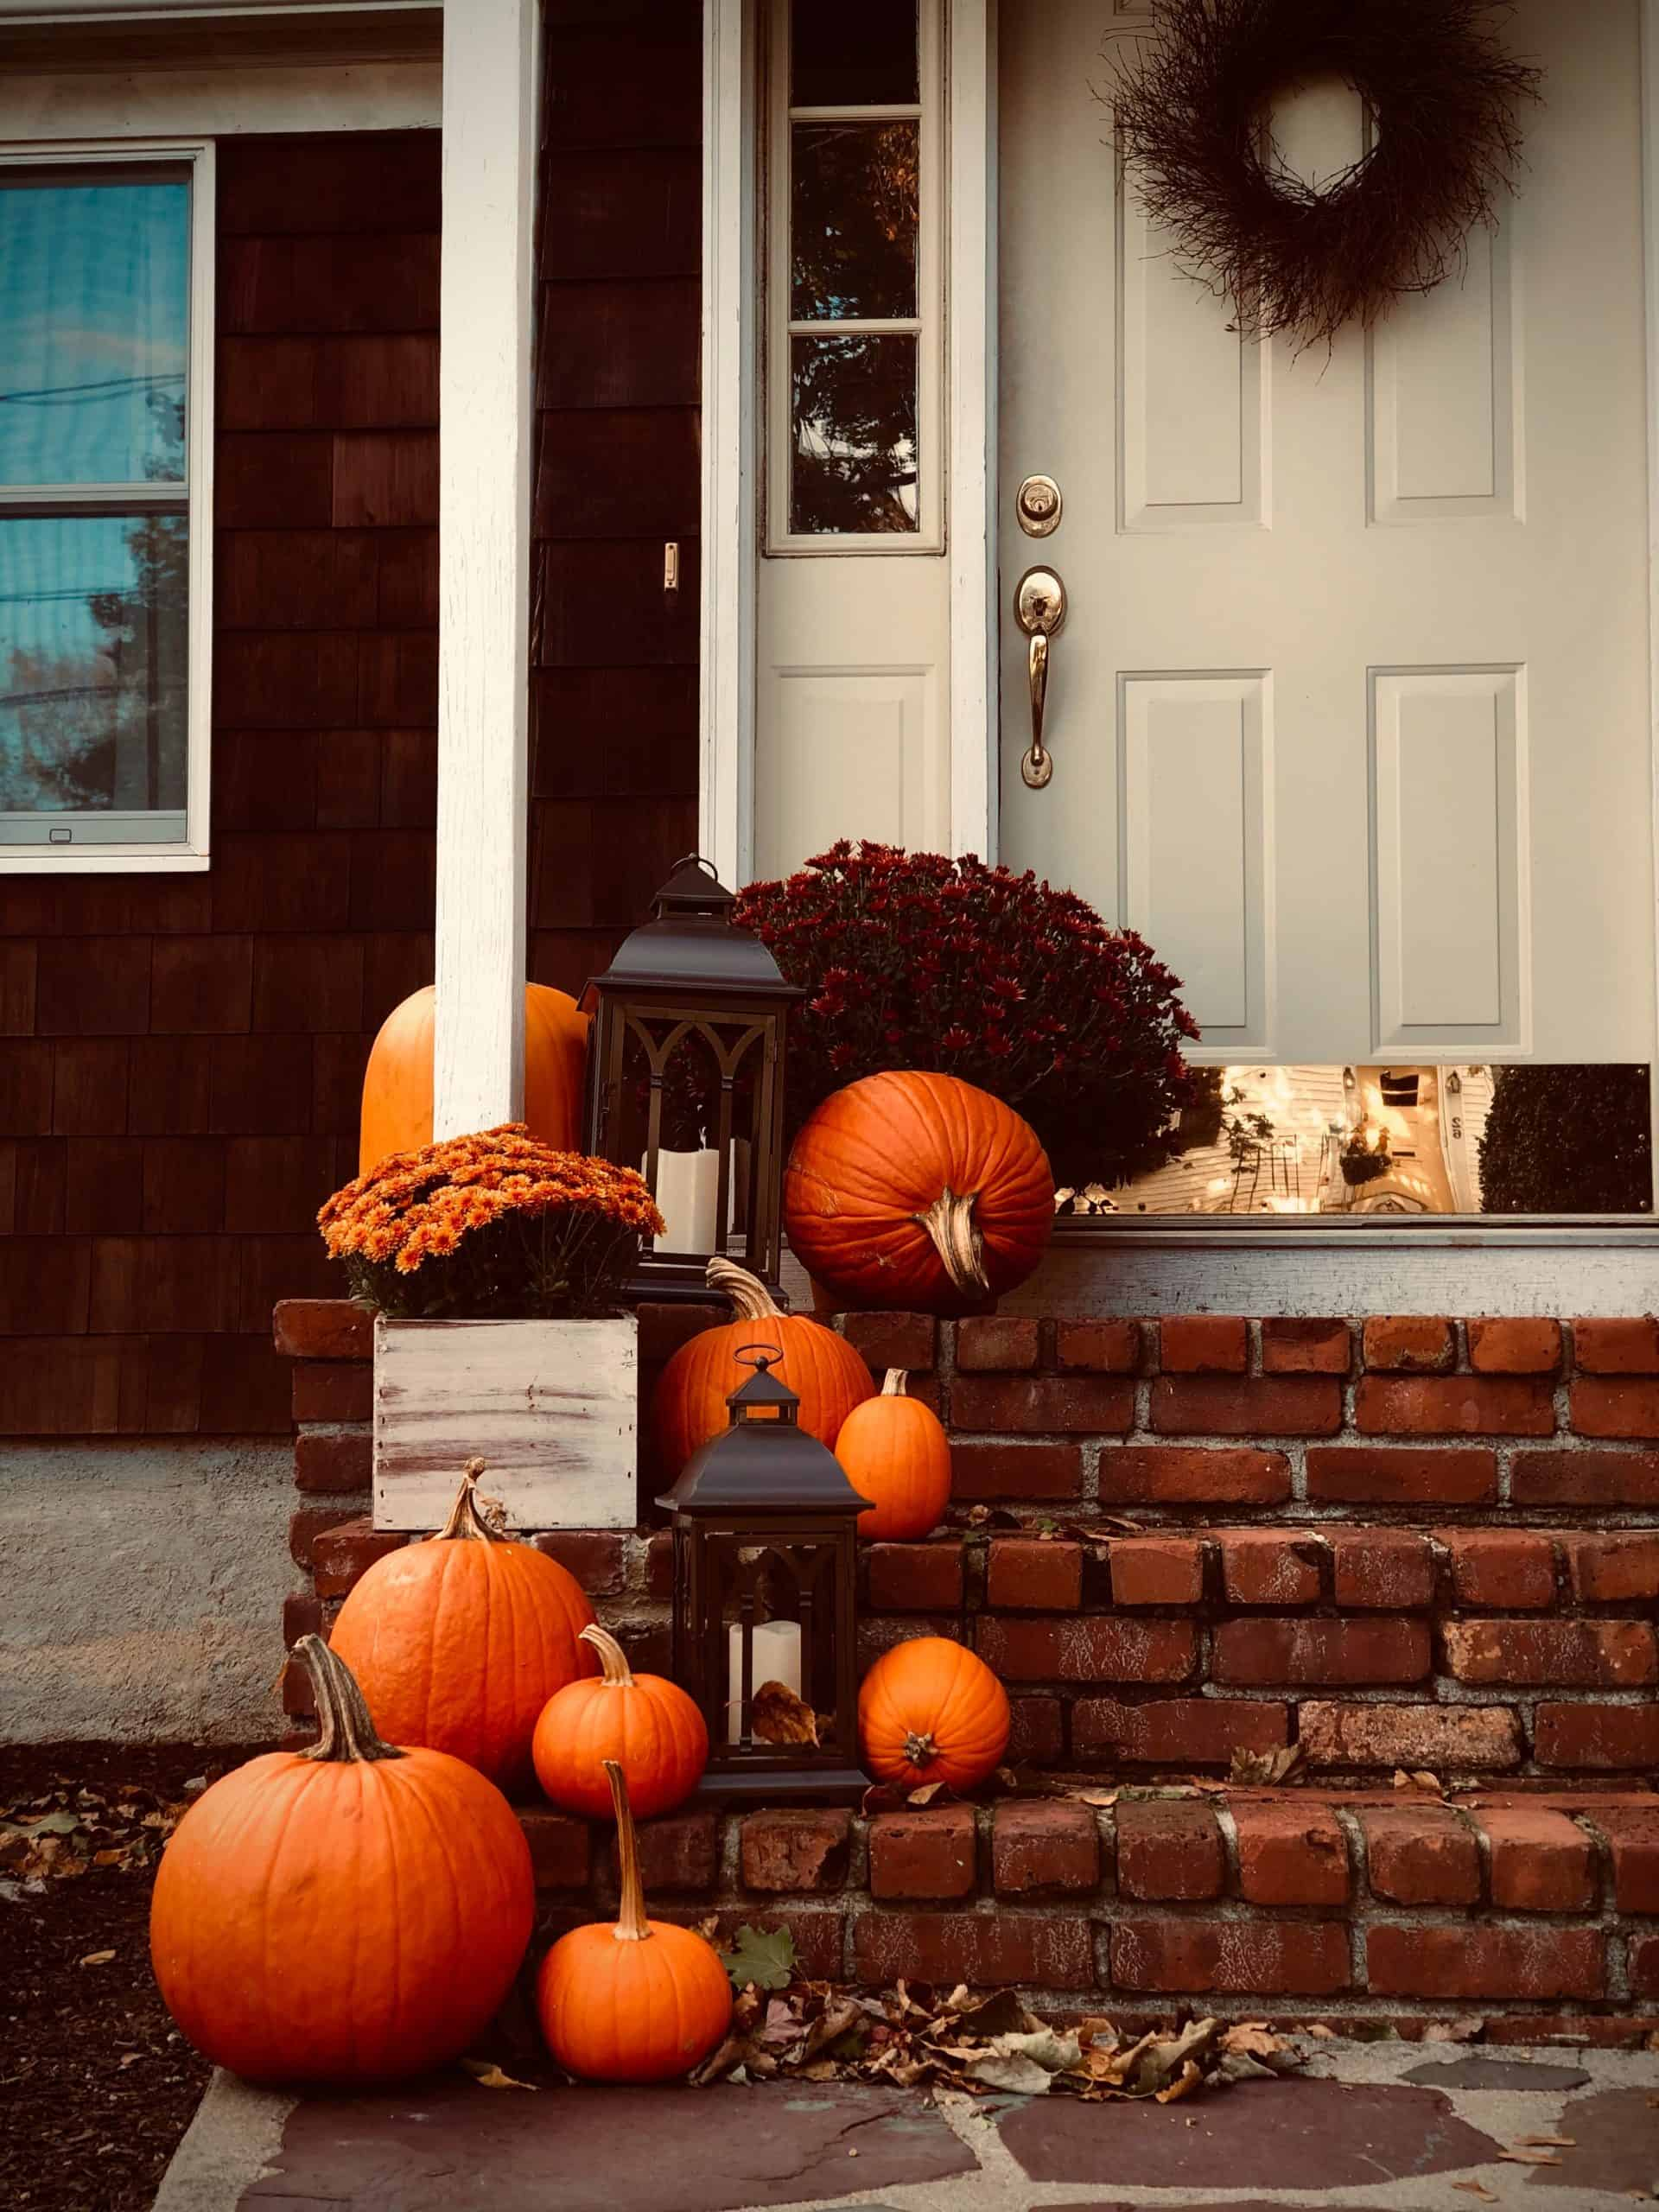 pumpkins and lanterns on front porch